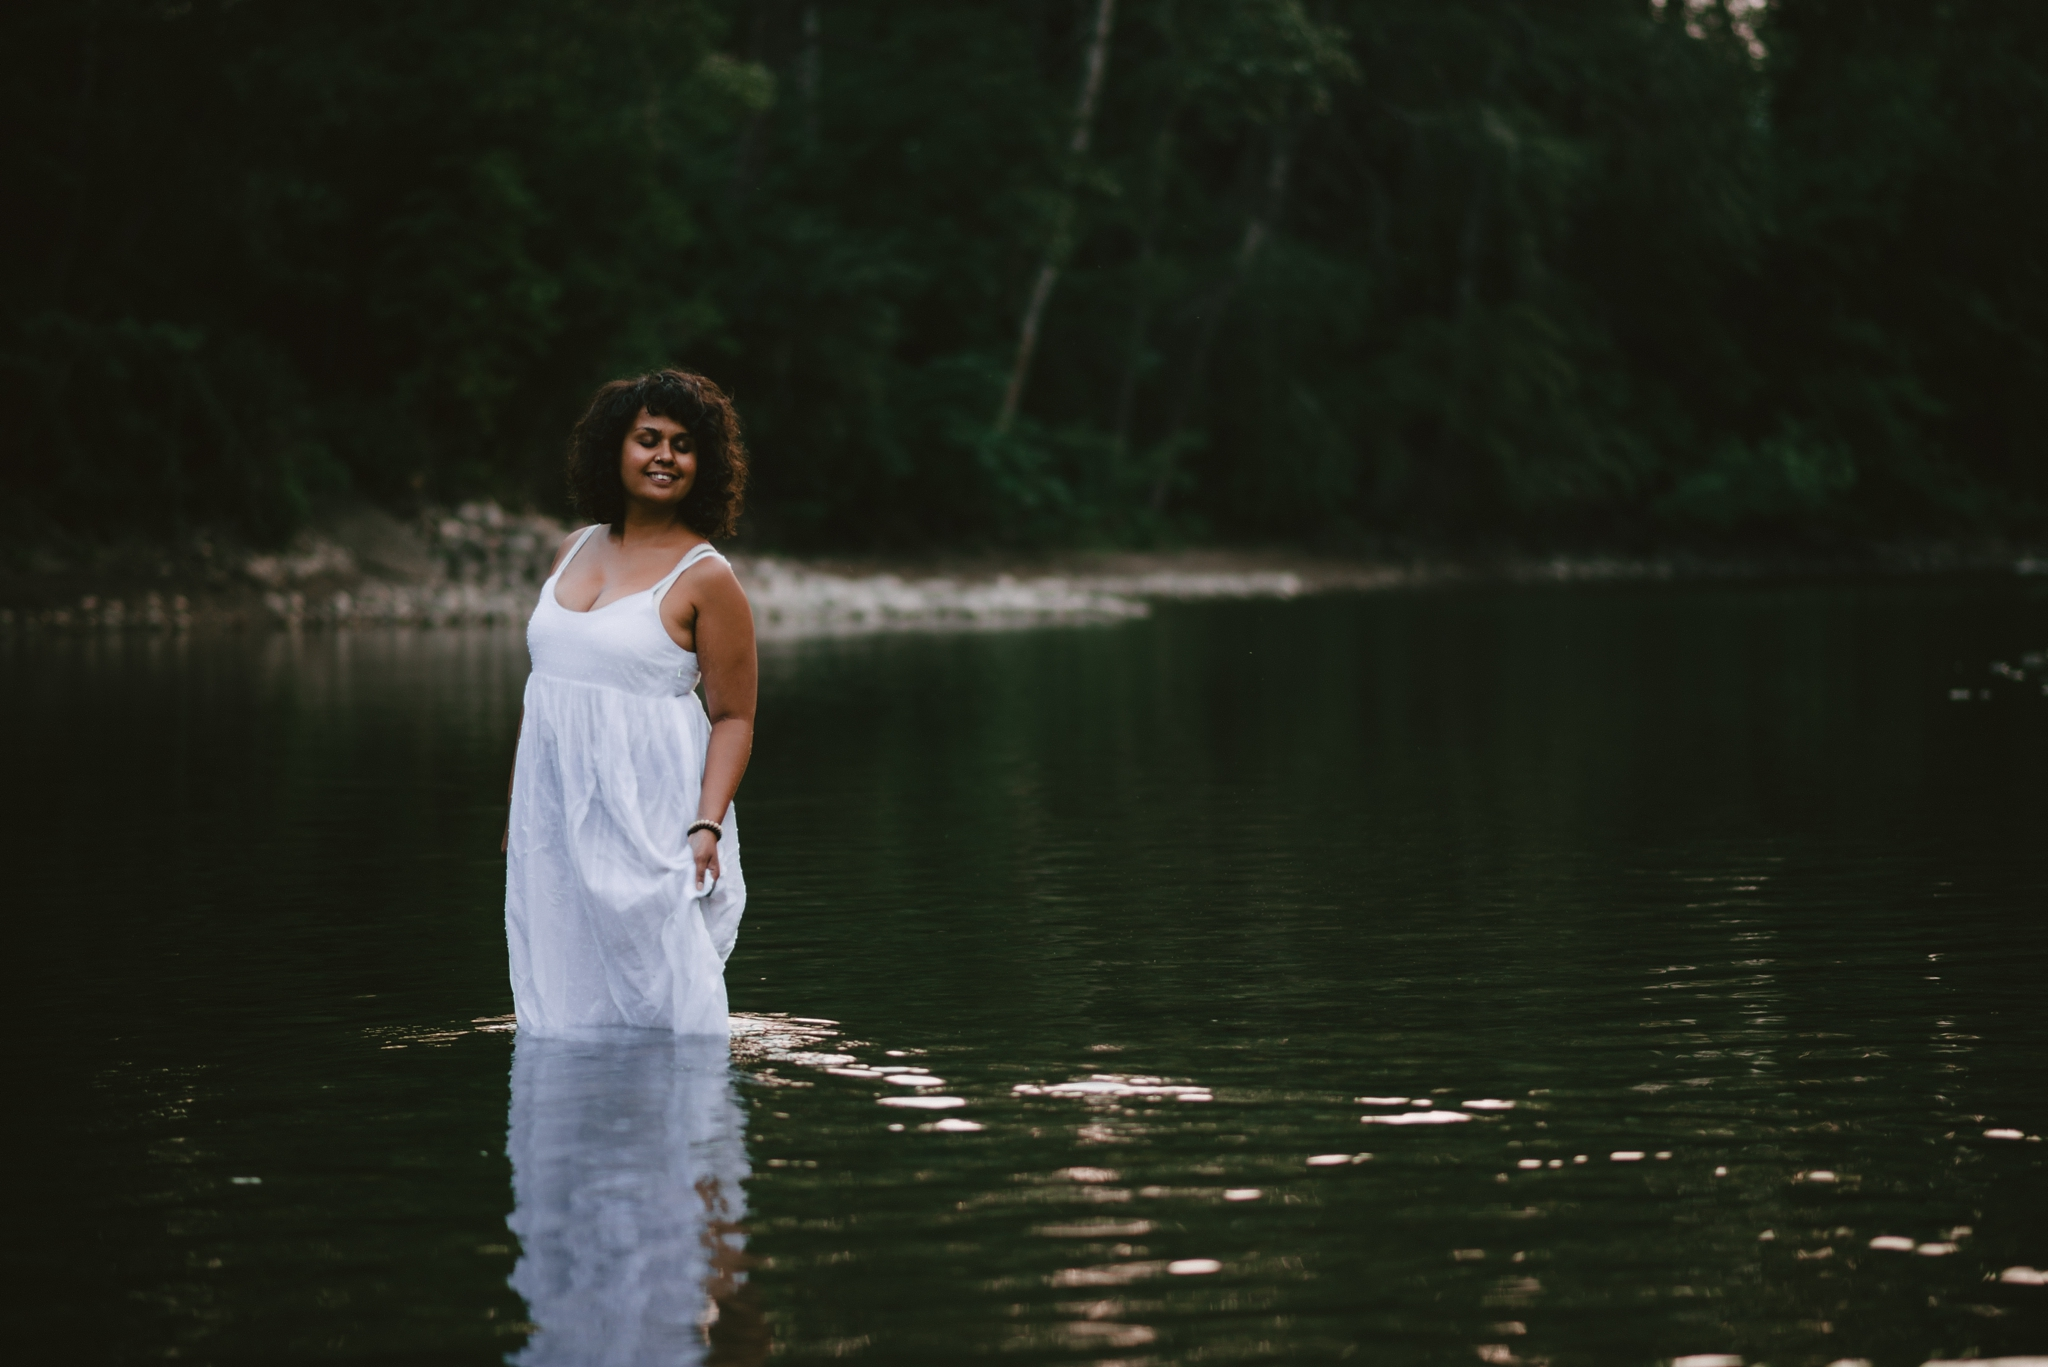 kaihla_tonai_intimate_wedding_elopement_photographer_0064